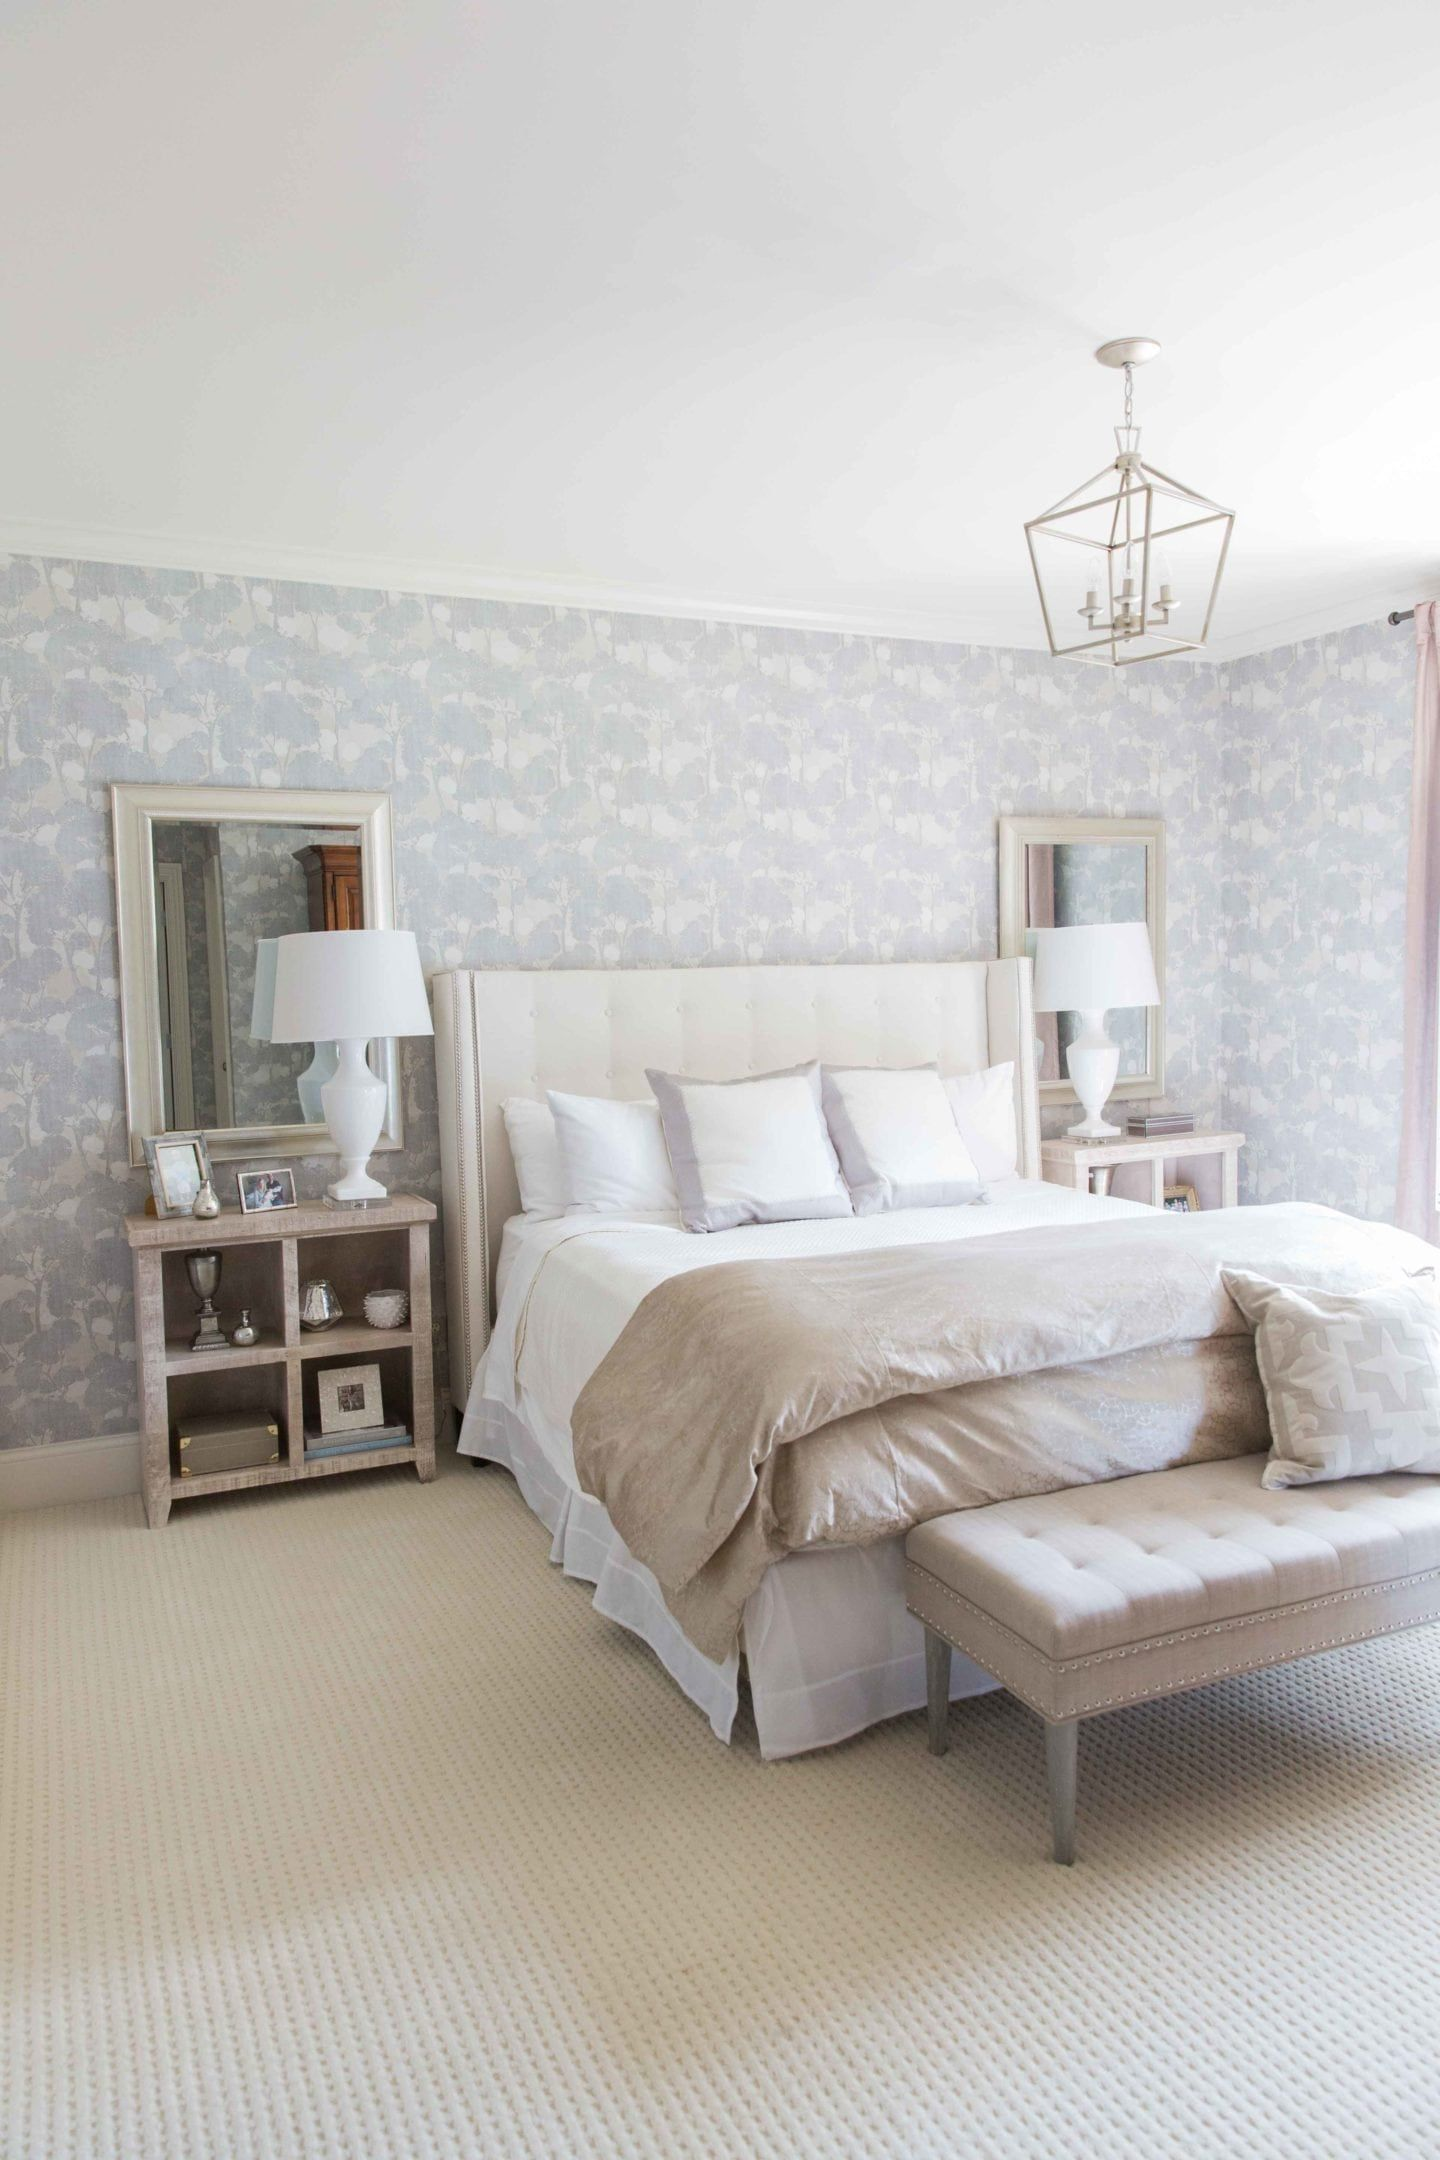 Our Bedroom Makeover using Calico Pattern Wallpaper WOW